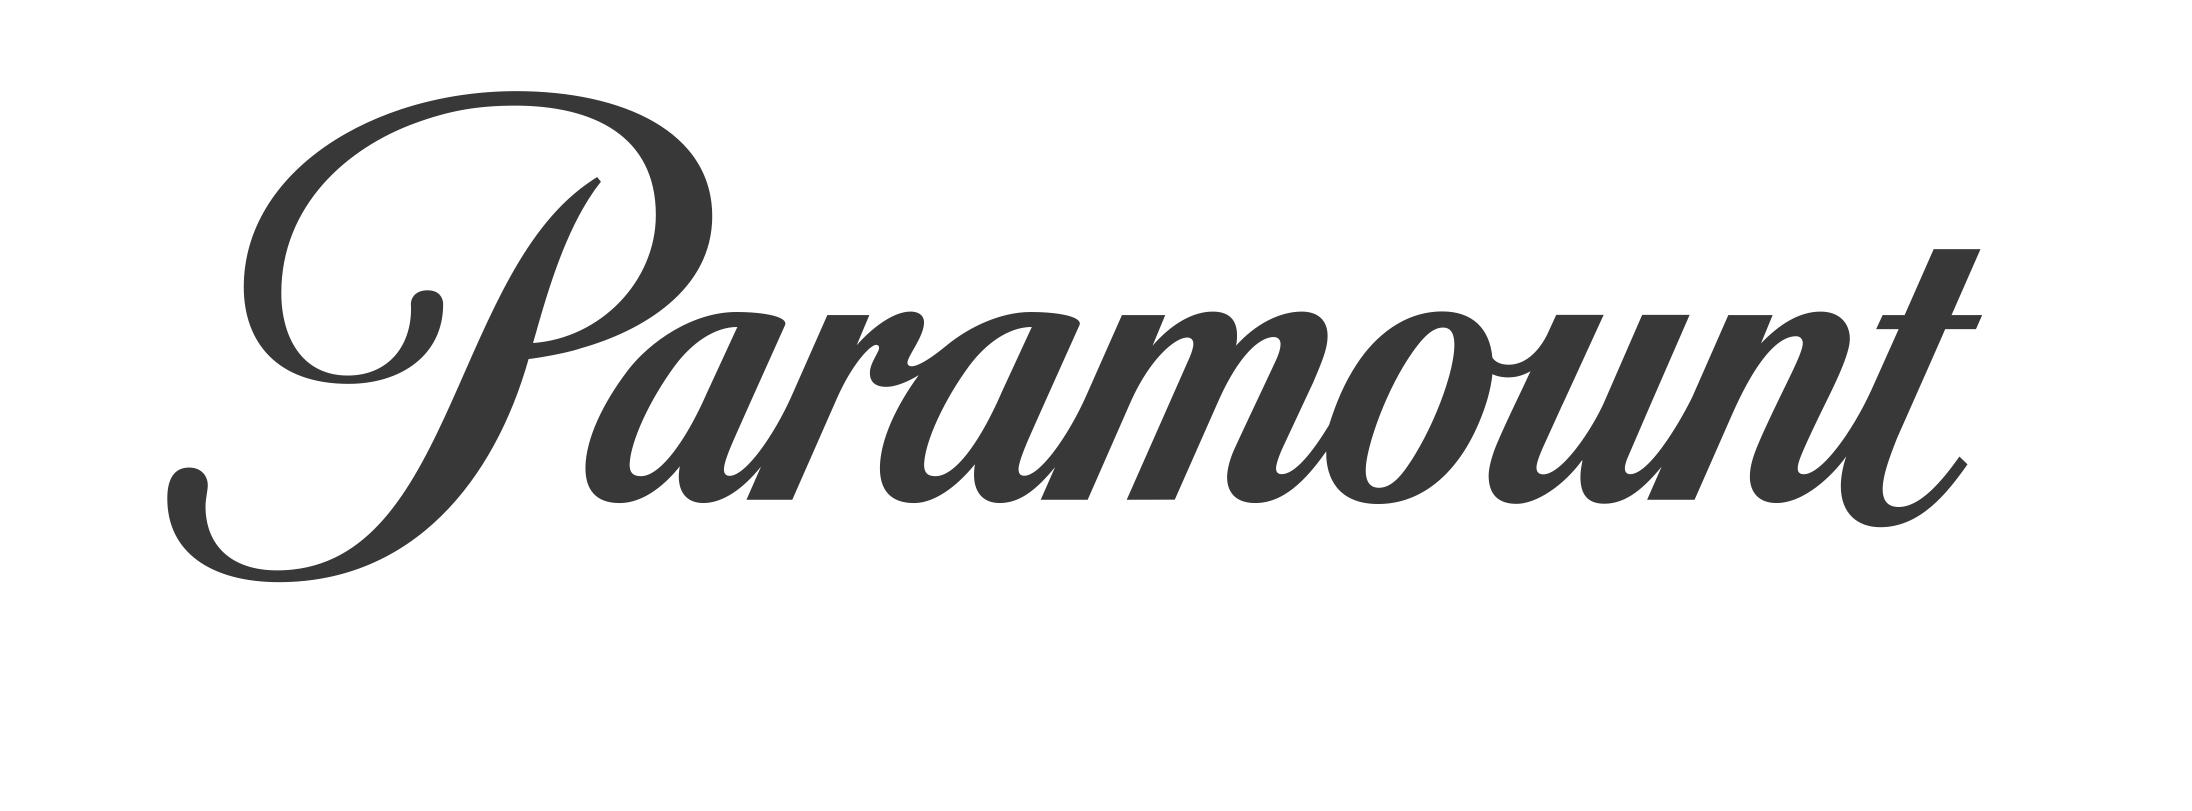 Paramount Logo - new PARAMOUNT logo by Ian Brignell | Ian Brignell Lettering Design